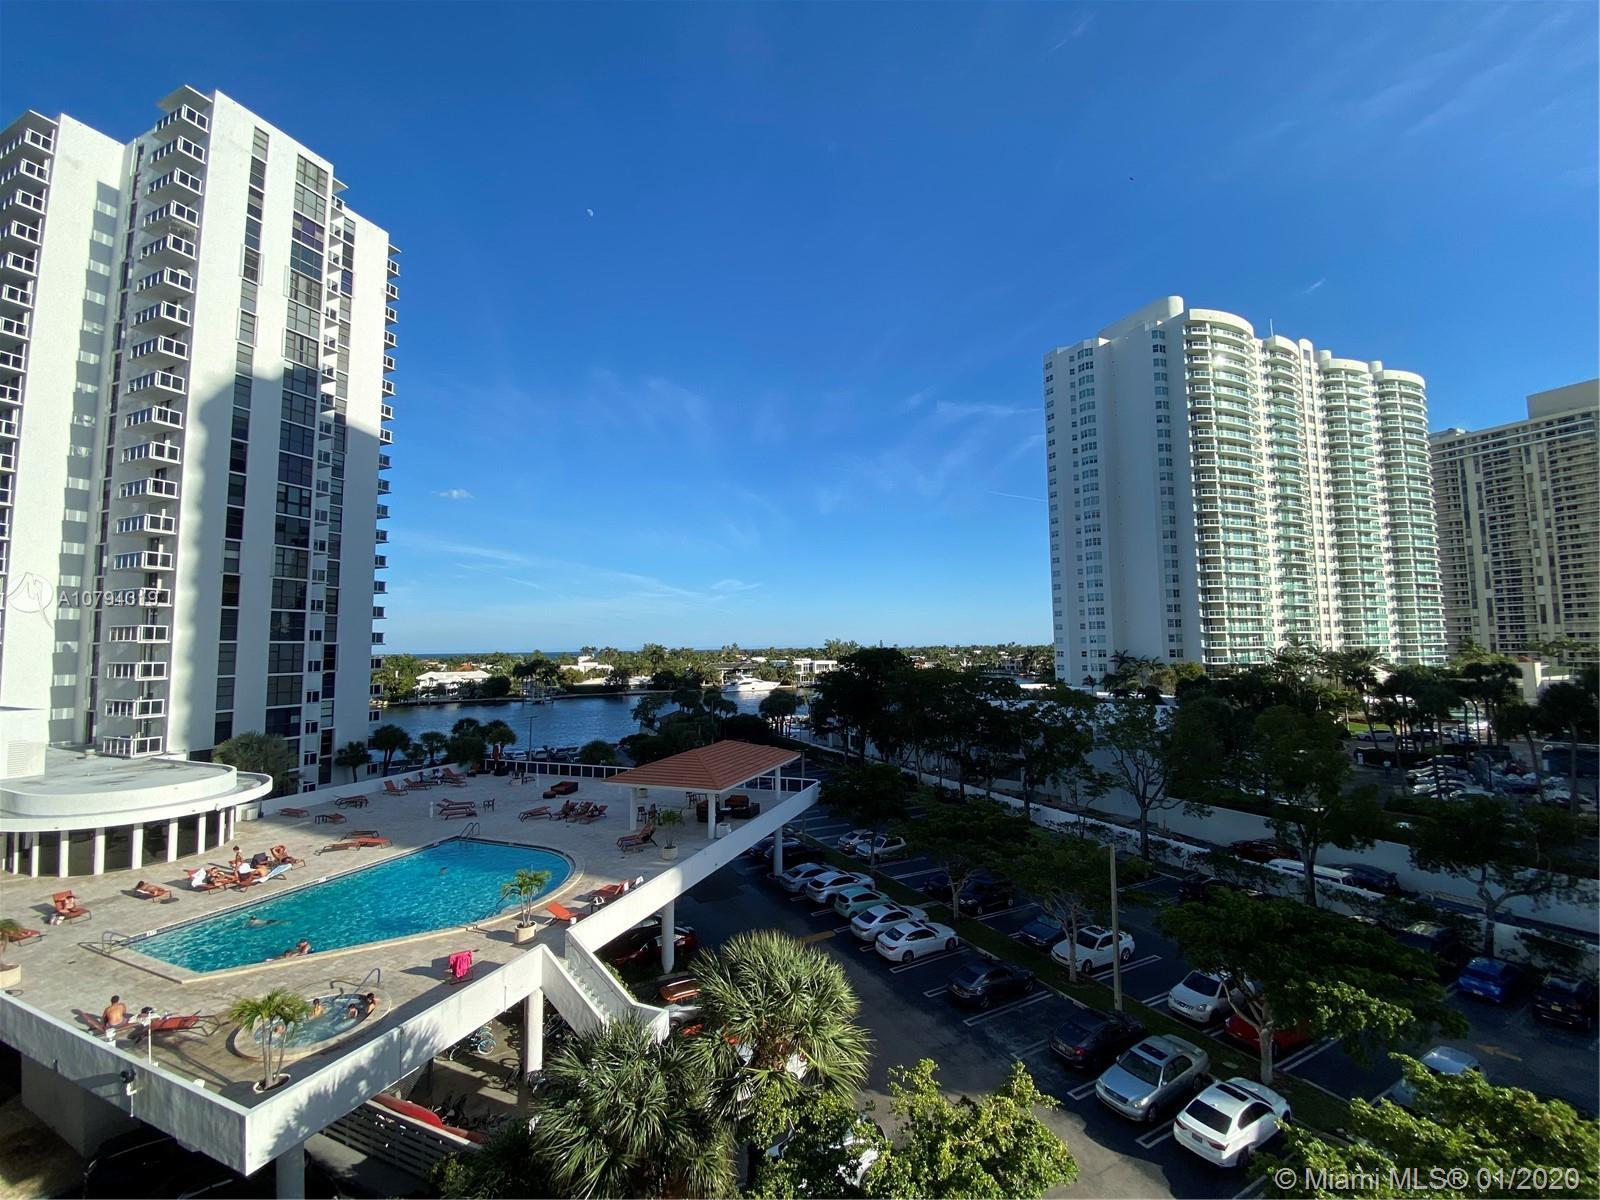 ONLY 3 BEDROOM 3 BATH CORNER UNIT FOR SALE IN WATERVIEW. THIS WELL MAINTAINED CONDOMINIUM IS SPACIOU